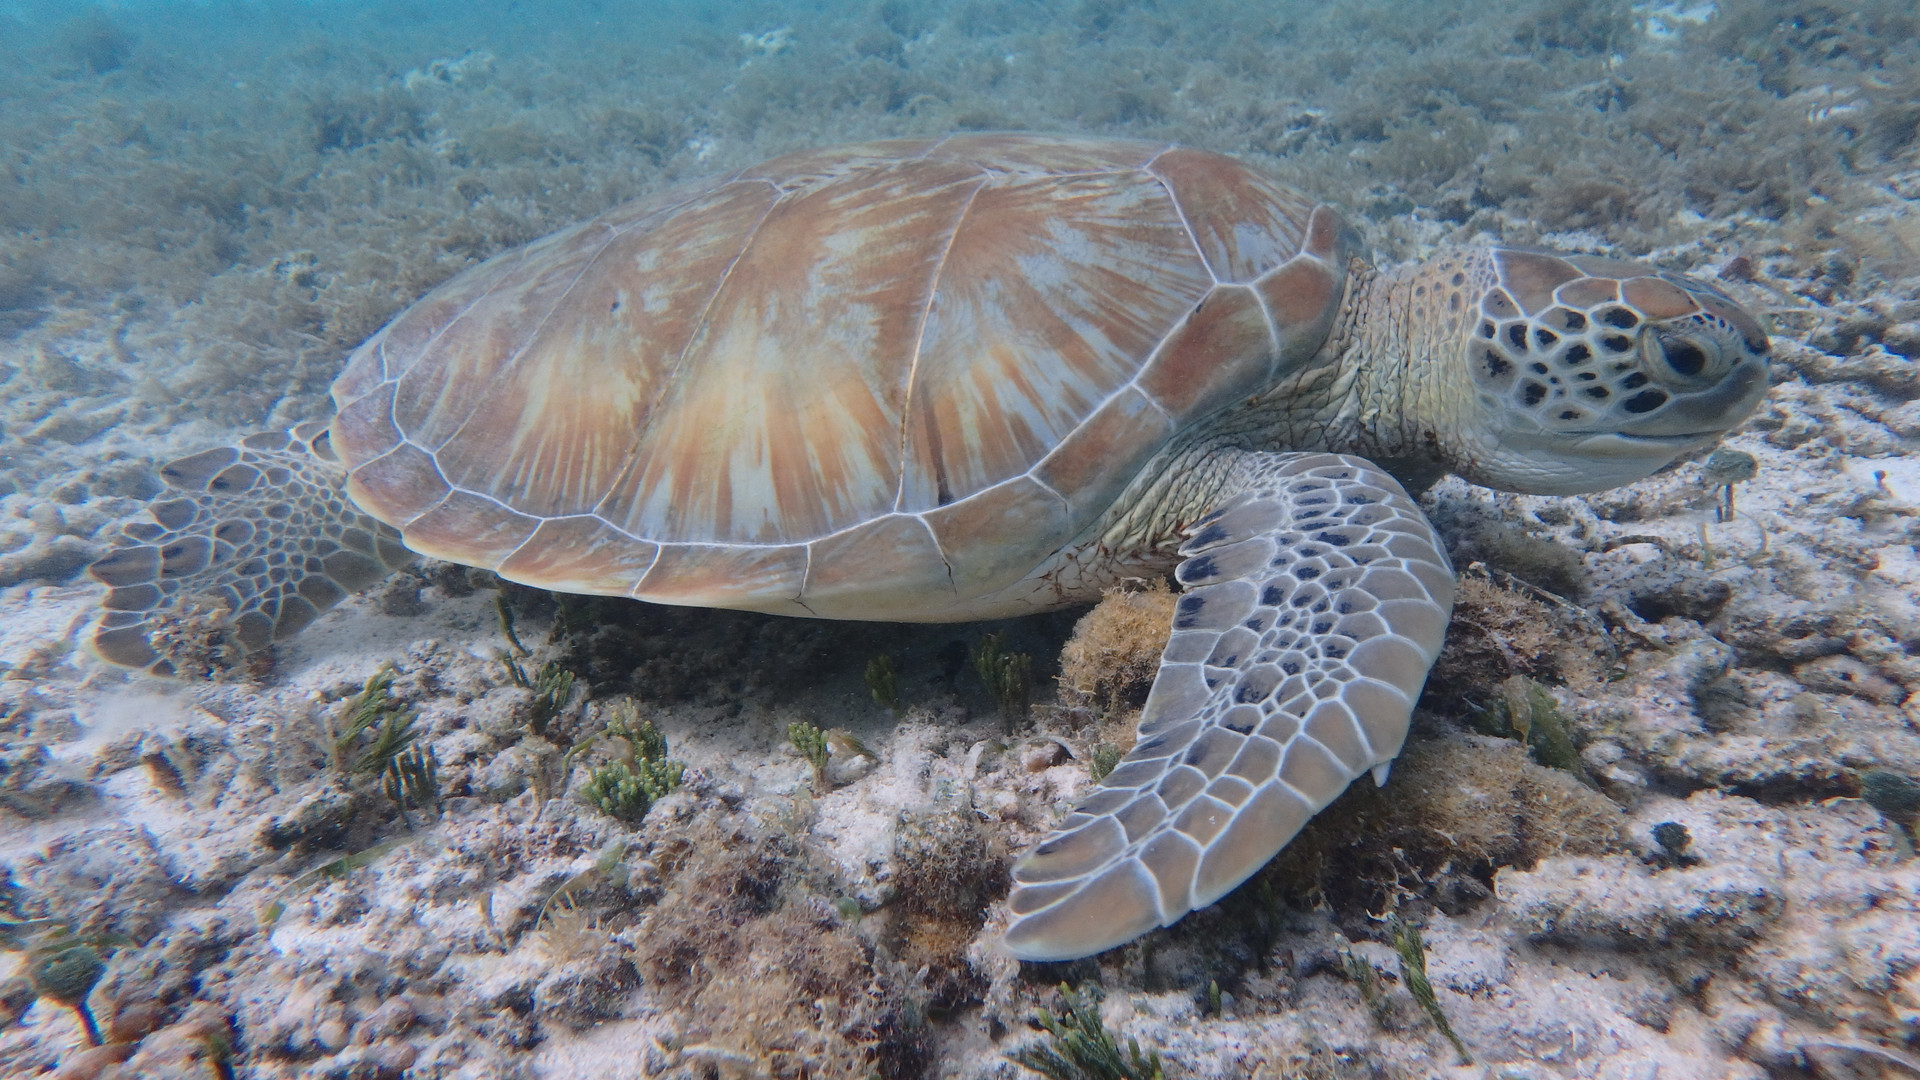 Tortue marine, Guadeloupe, Croisiere guadeloupe